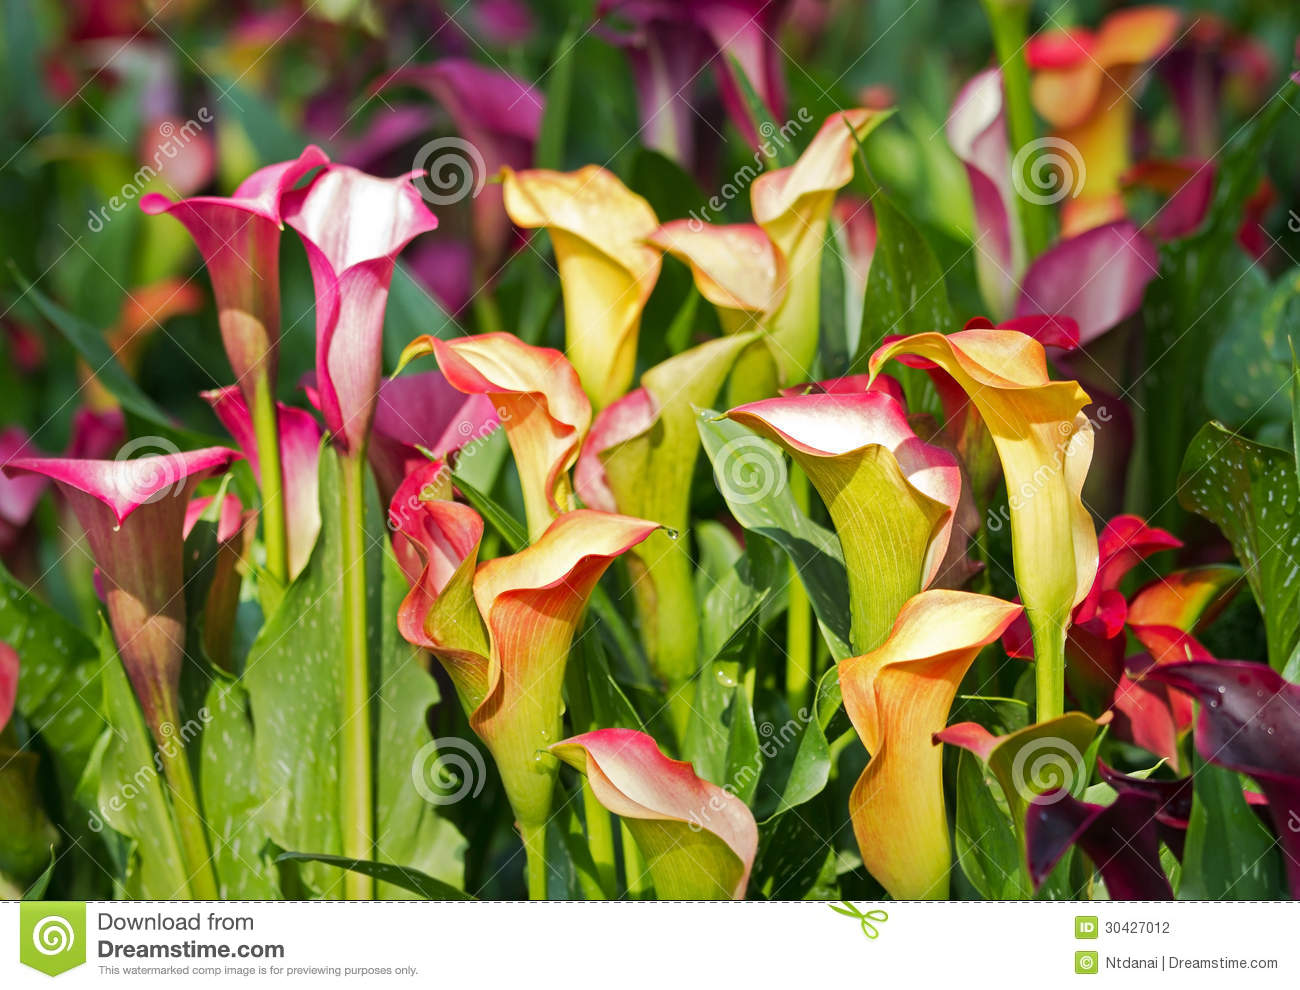 9 202 Calla Lily Photos Free Royalty Free Stock Photos From Dreamstime